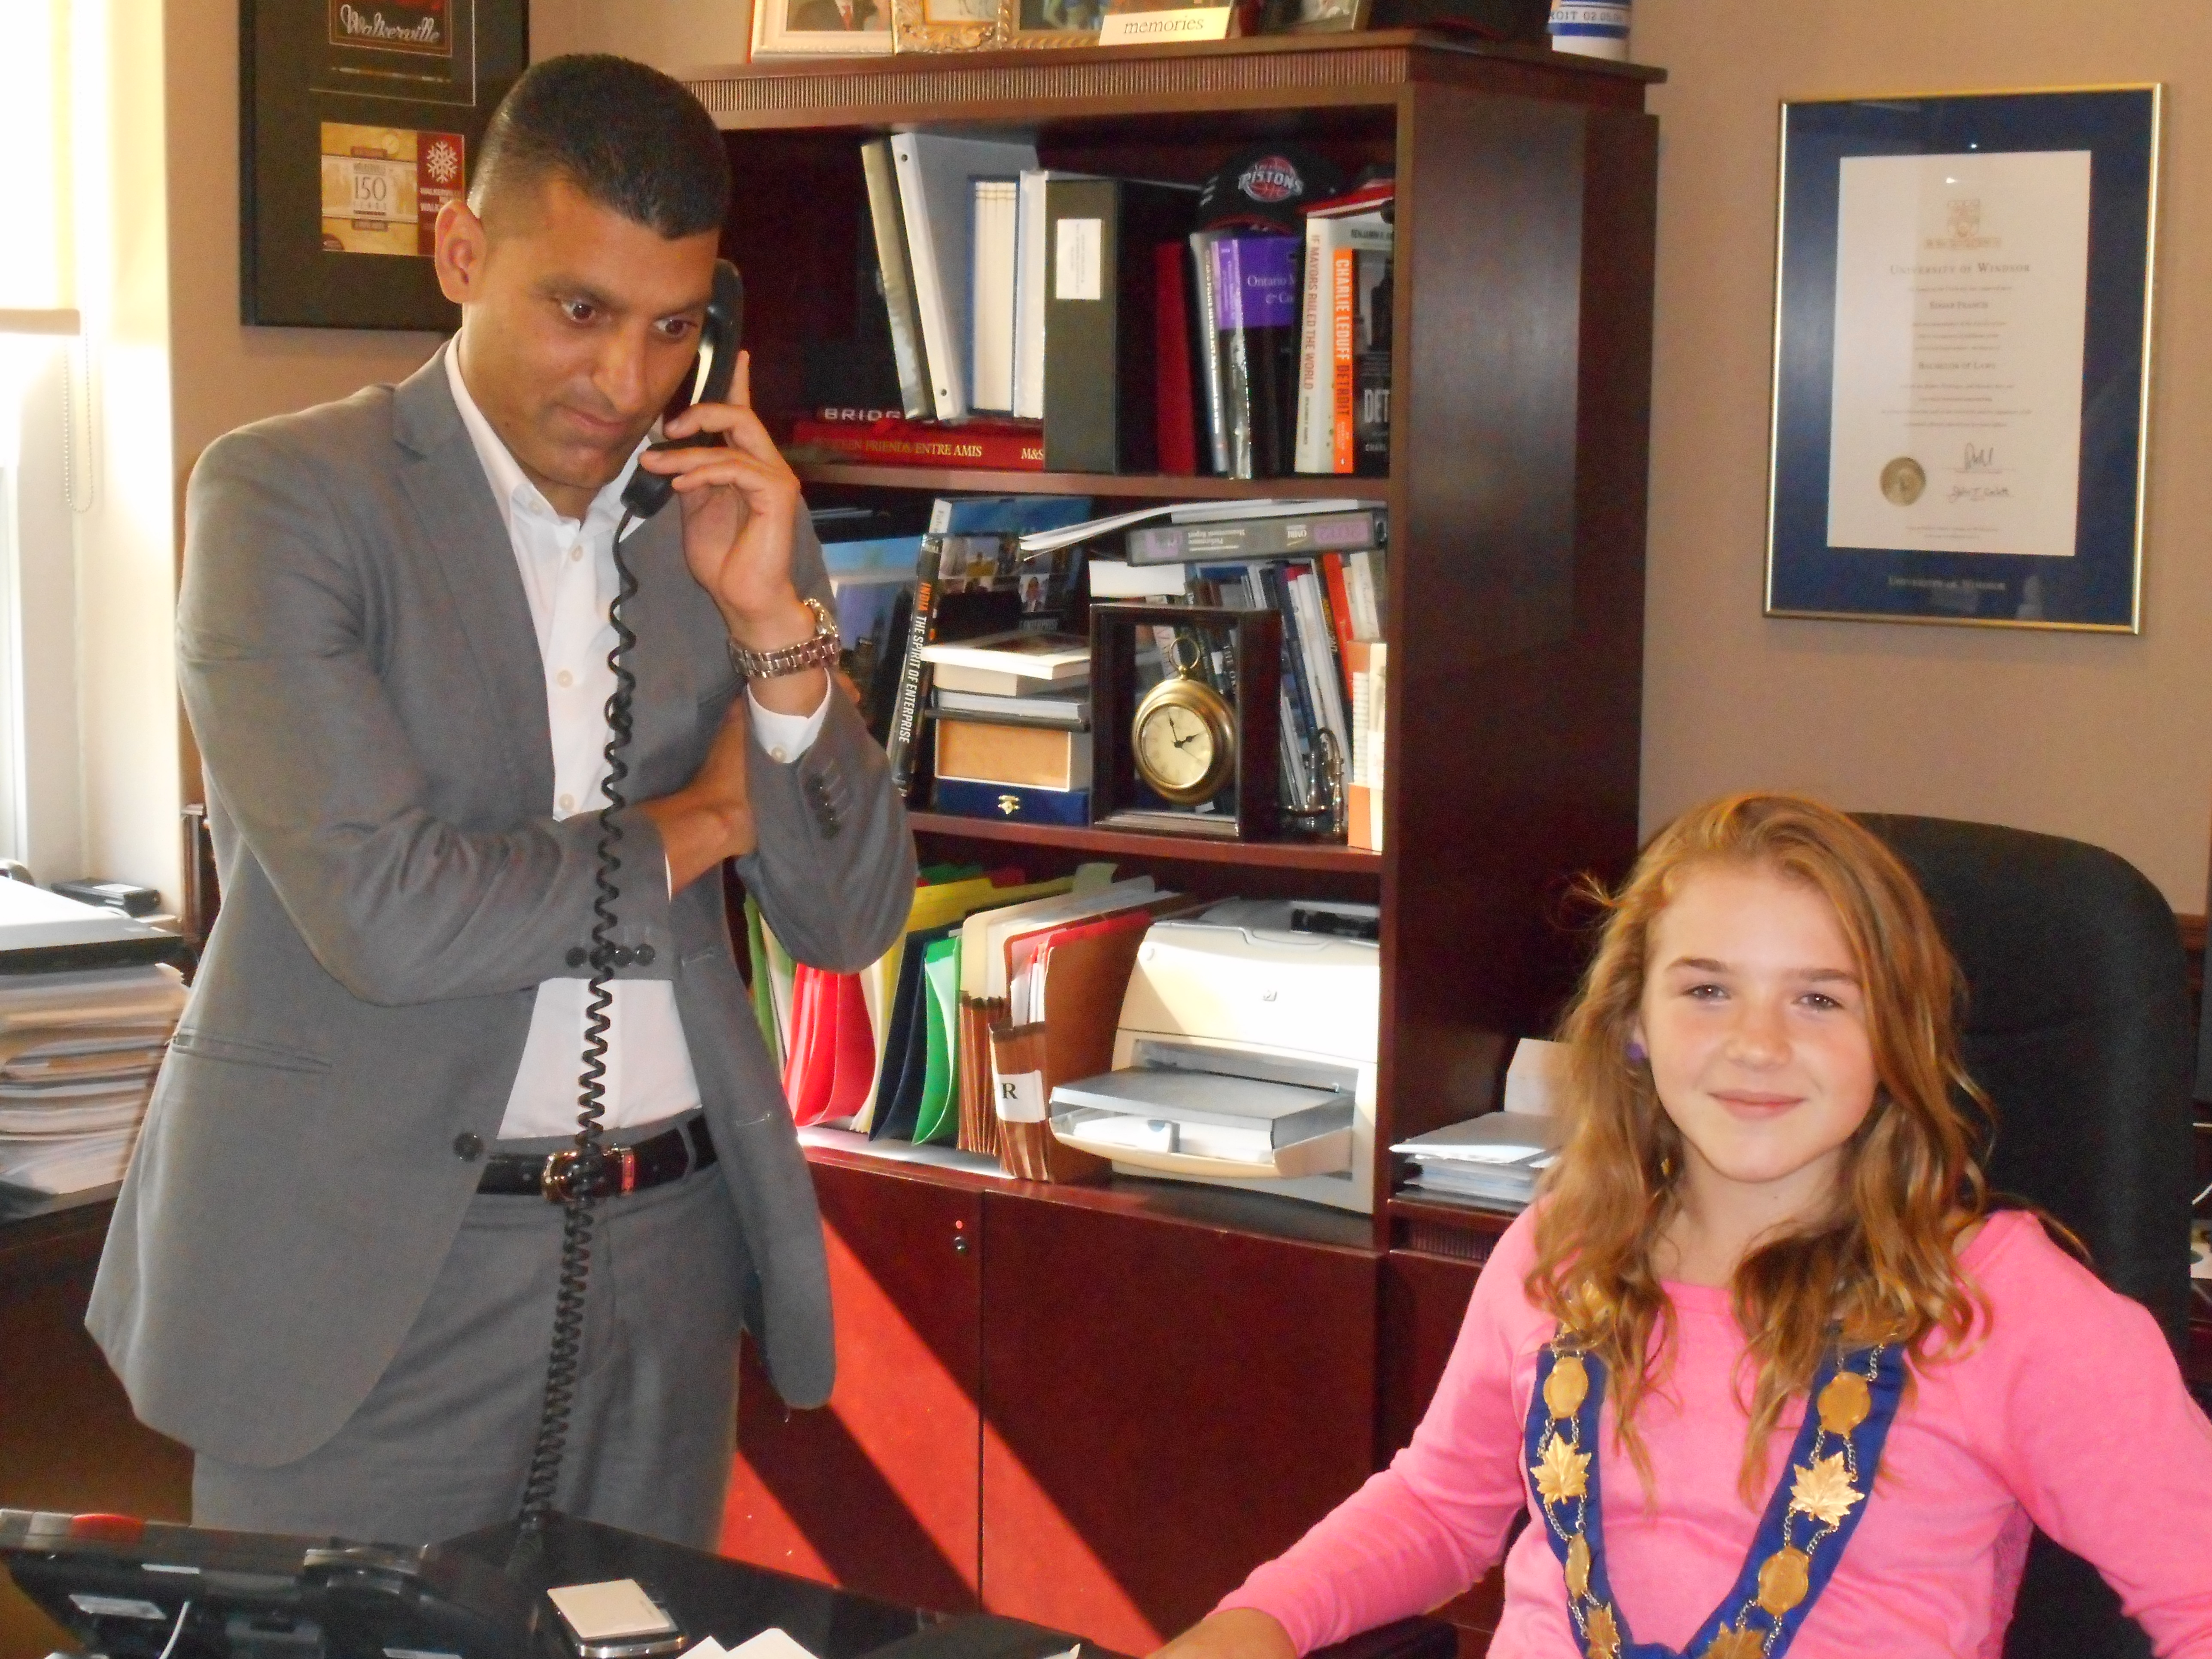 Eddie Francis (right) and Windsor Mayor For A Day Paige Lord (left) courtesy of Big Brothers Big Sisters Windsor Essex executive director John Sutton.